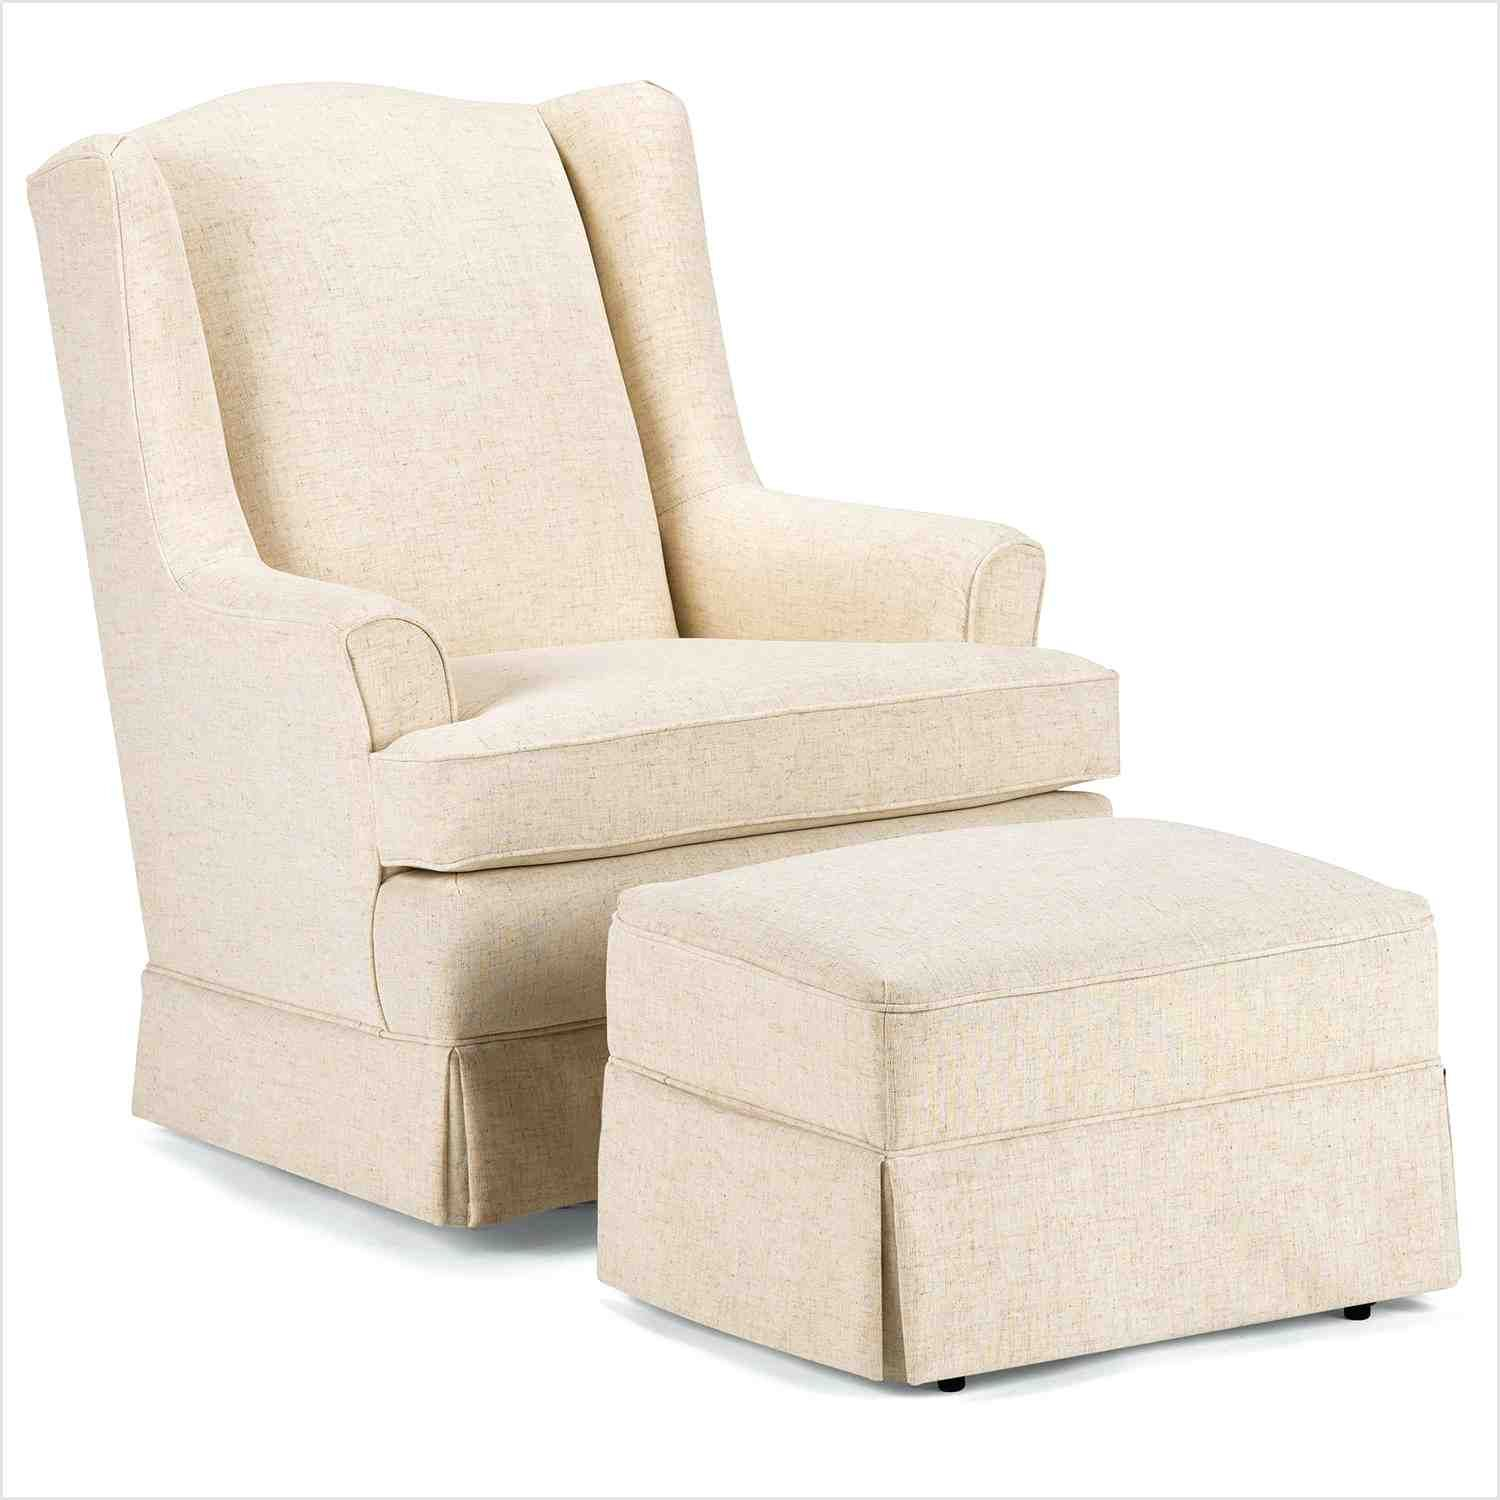 50 Best Chair Inc Glider Rocker Best Paint To Paint Furniture Check More At Http Steelbookreview Com 2 Baby Rocking Chair Nursery Chair Best Chairs Glider